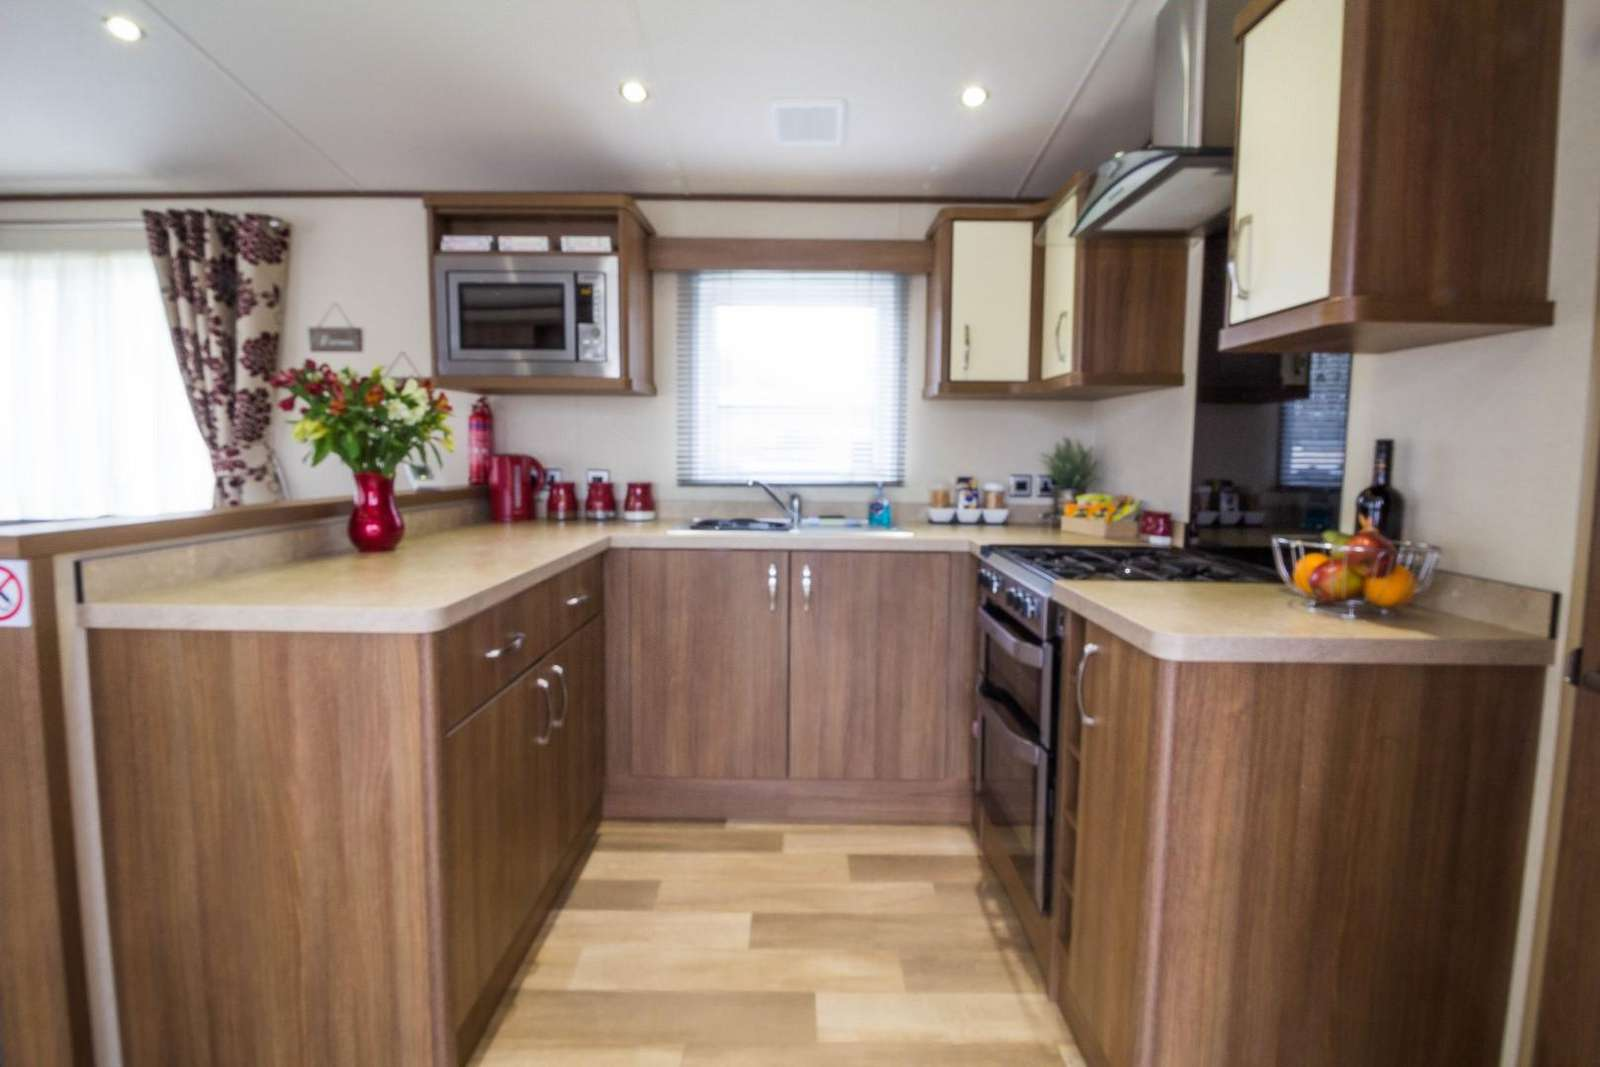 Modern and Stylish kitchen in this 4 berth luxury lodge at the Haveringland Hall Park.